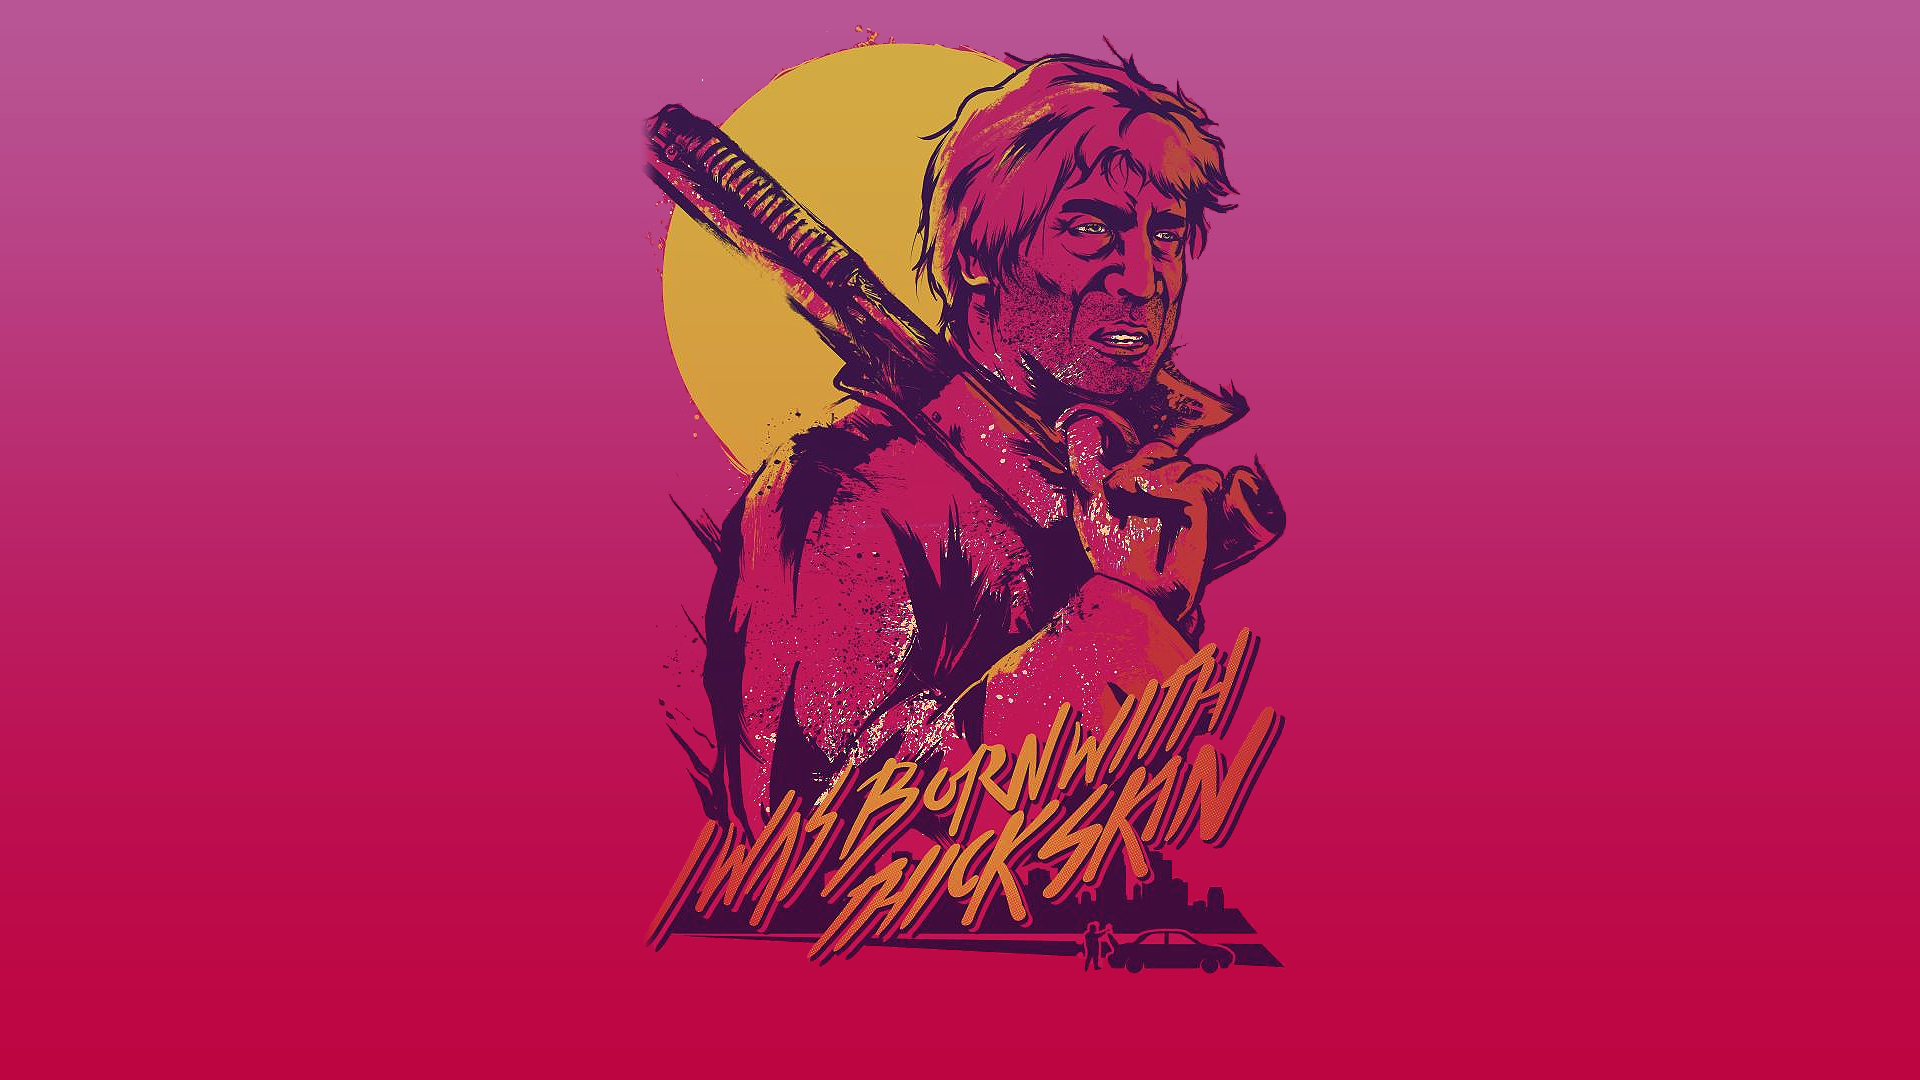 Hotline Miami 2: Wrong Number HD Wallpaper | Background ...